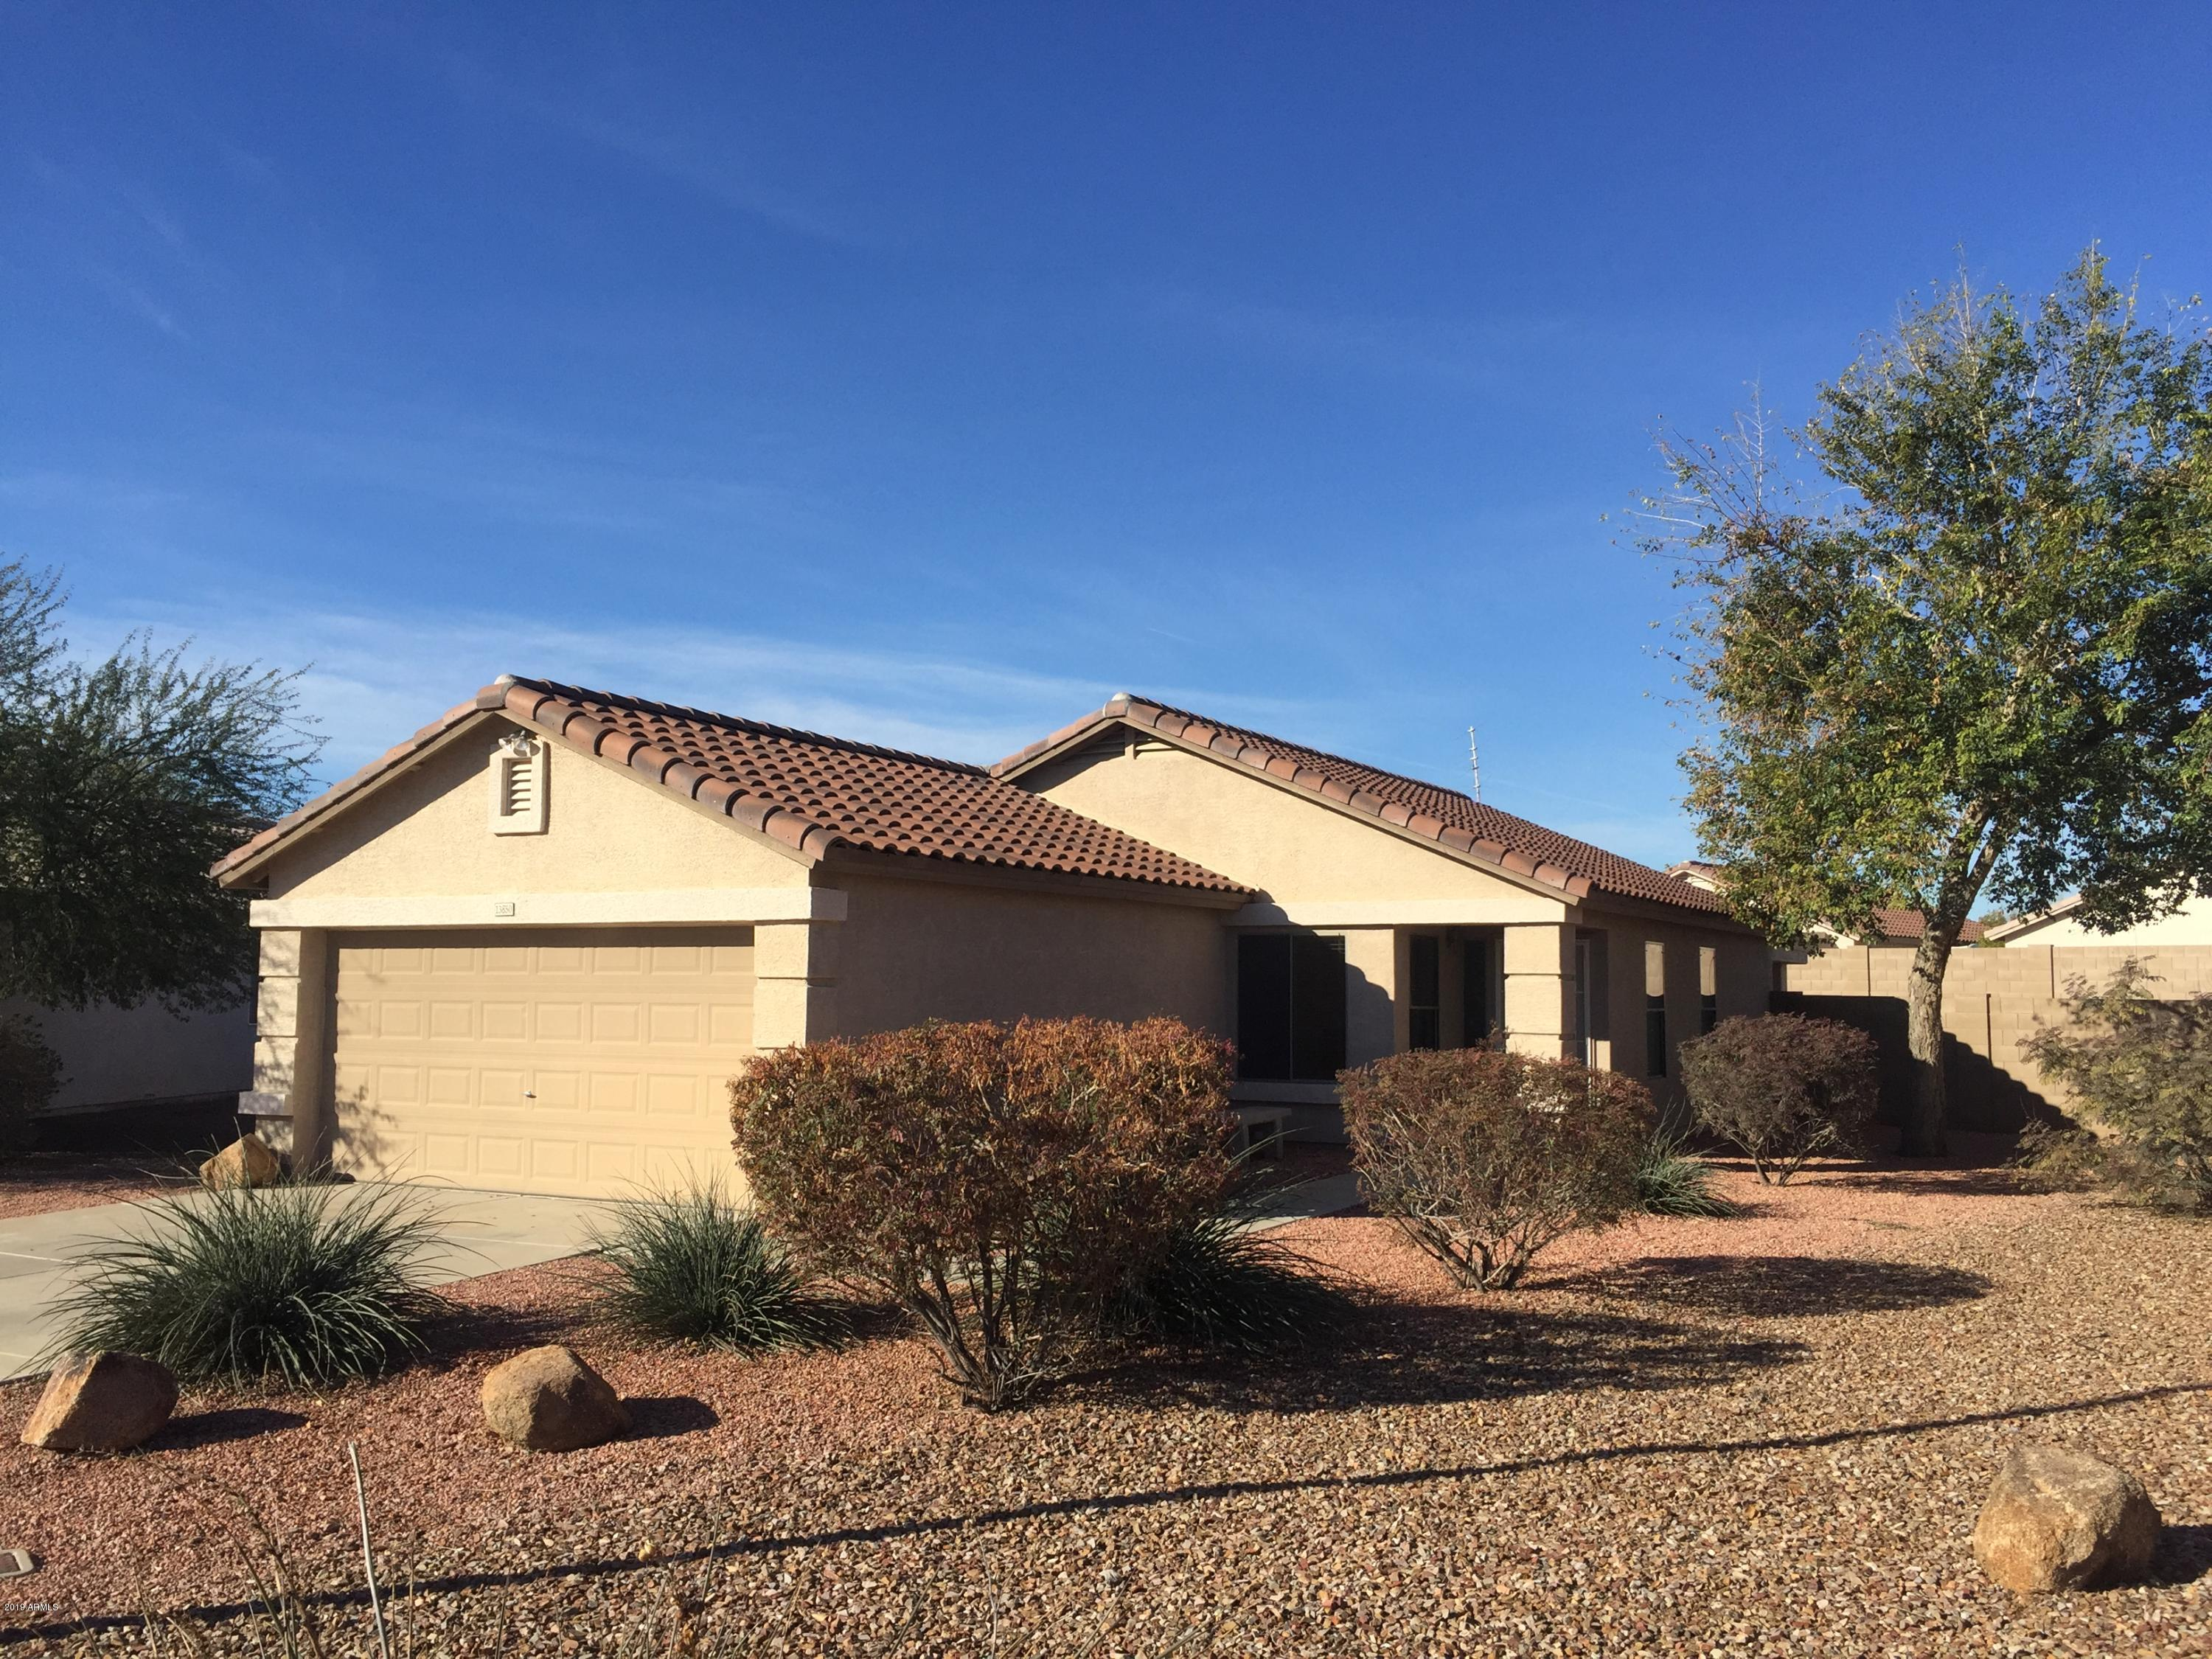 Photo of 13850 N 148TH Avenue, Surprise, AZ 85379